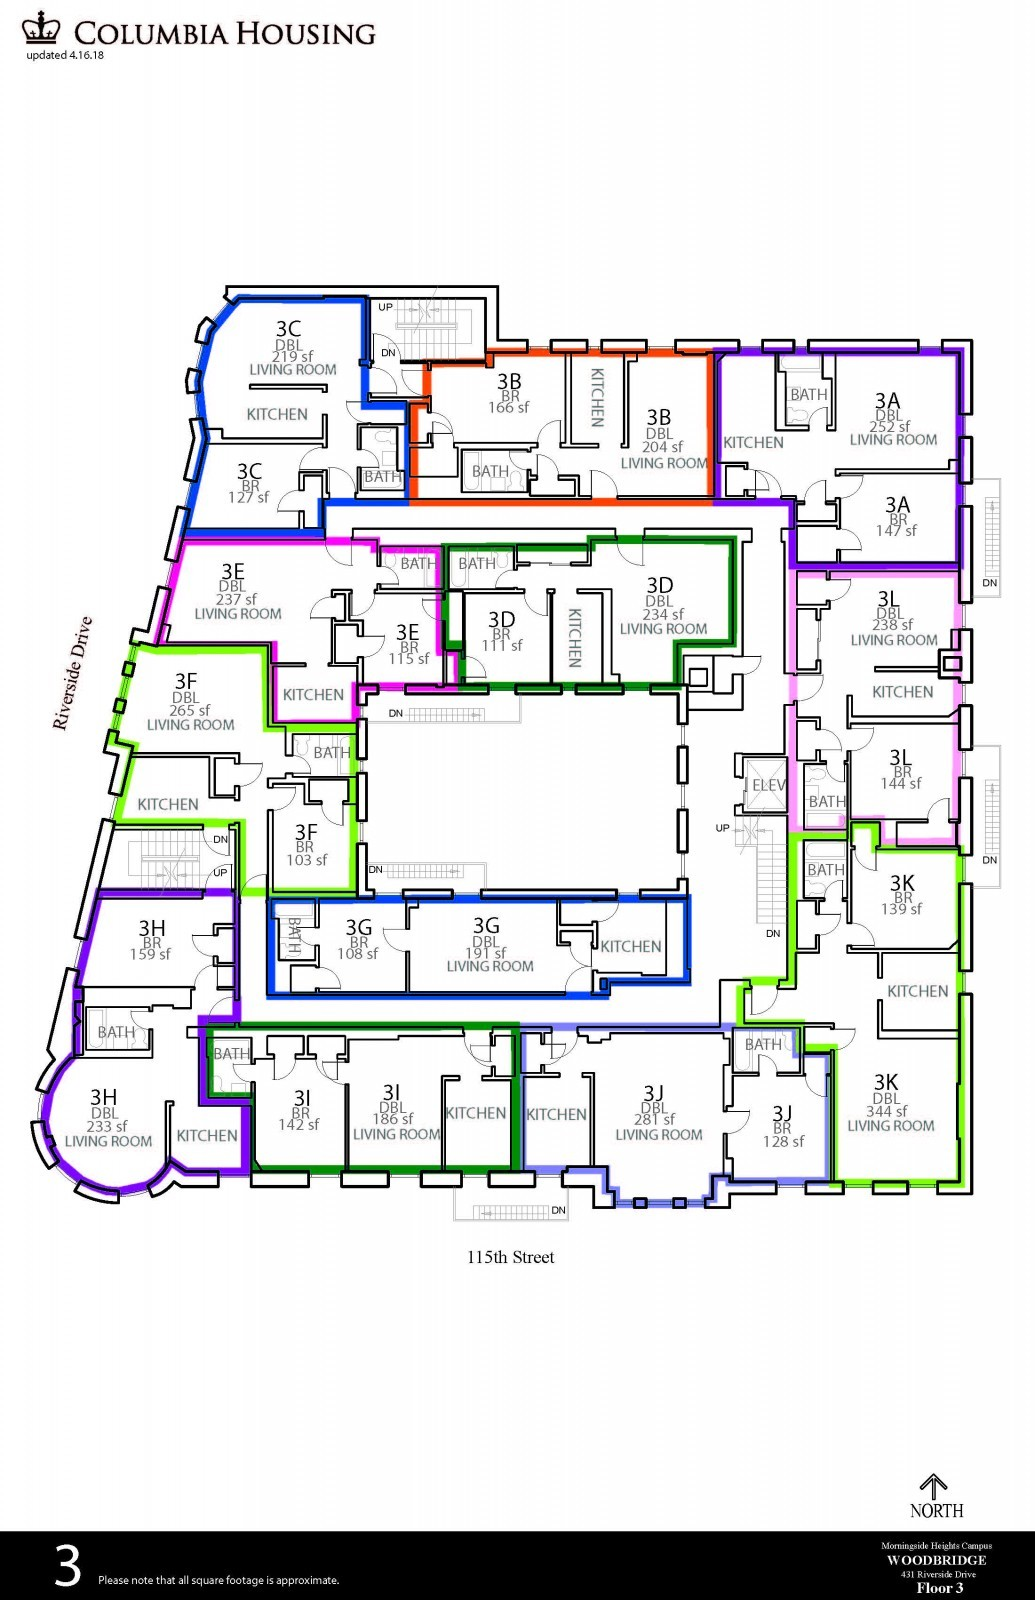 Floor Plan - Woodbridge Hall Third Floor